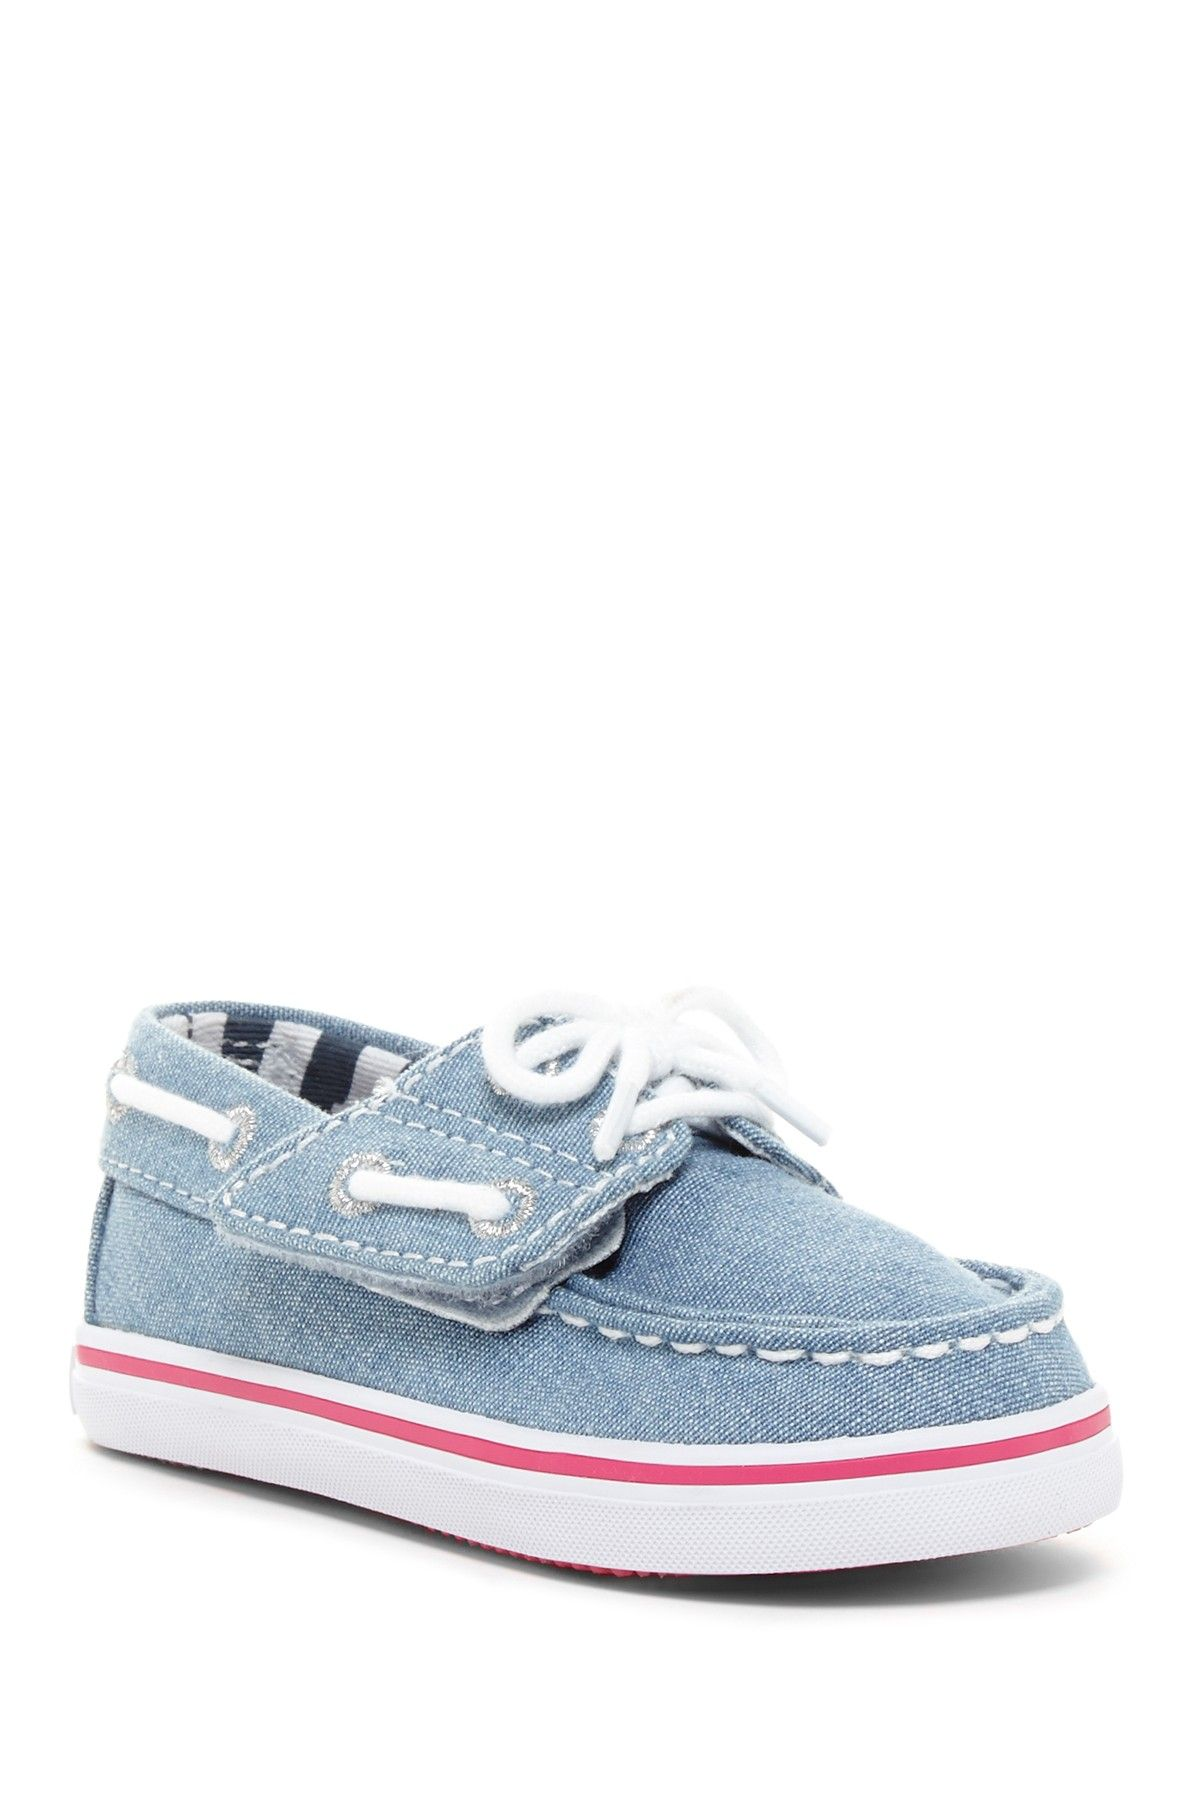 Bahama Jr Crib Boat Shoe Baby by Sperry Top Sider on HauteLook